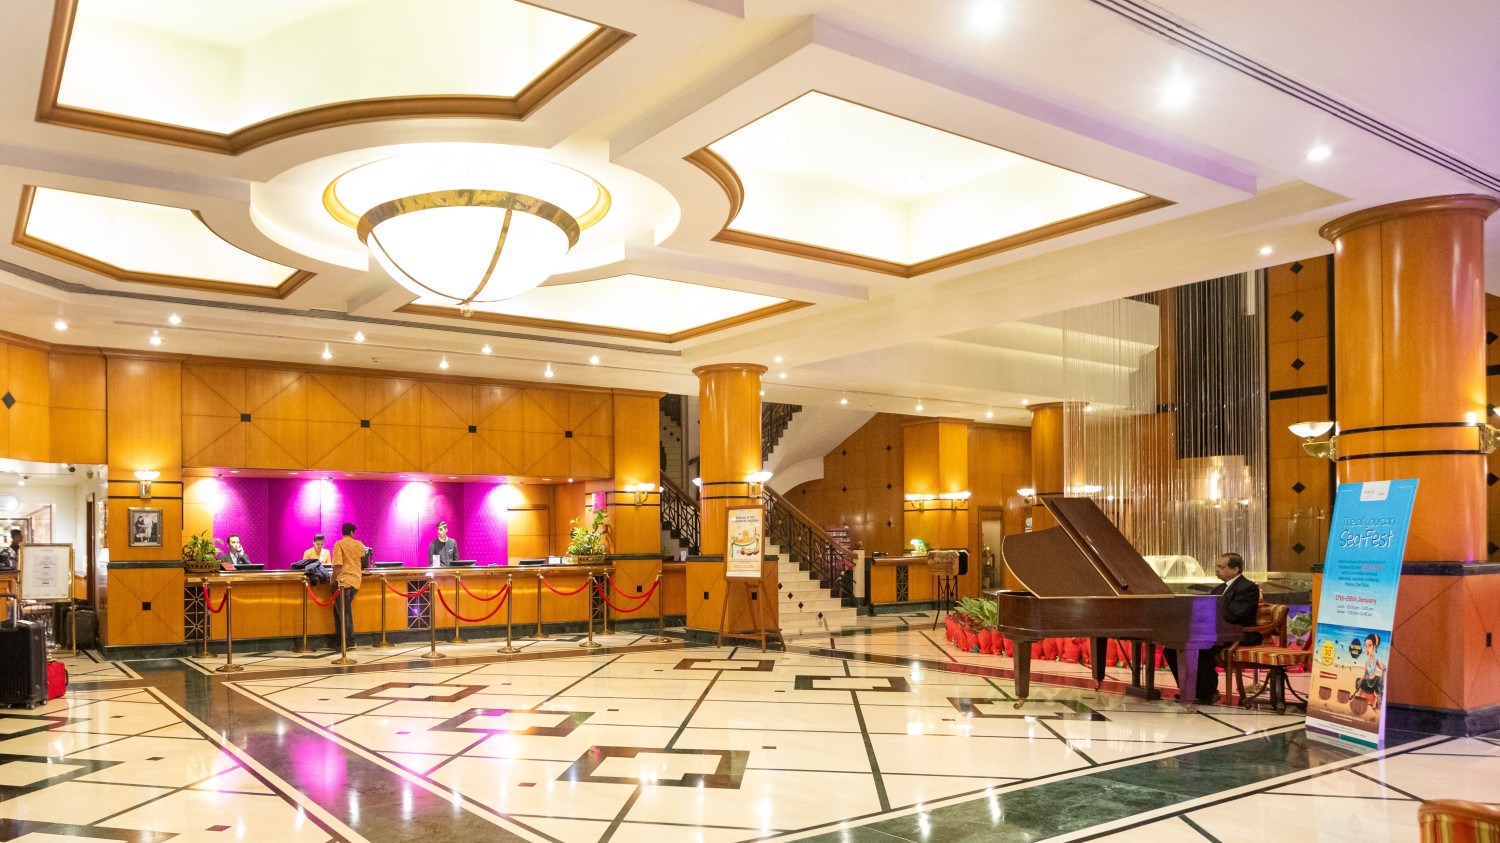 Lobby 2, Orchid Hotel Mumbai Vile Parle, 5 Star Hotel in Vile Parle